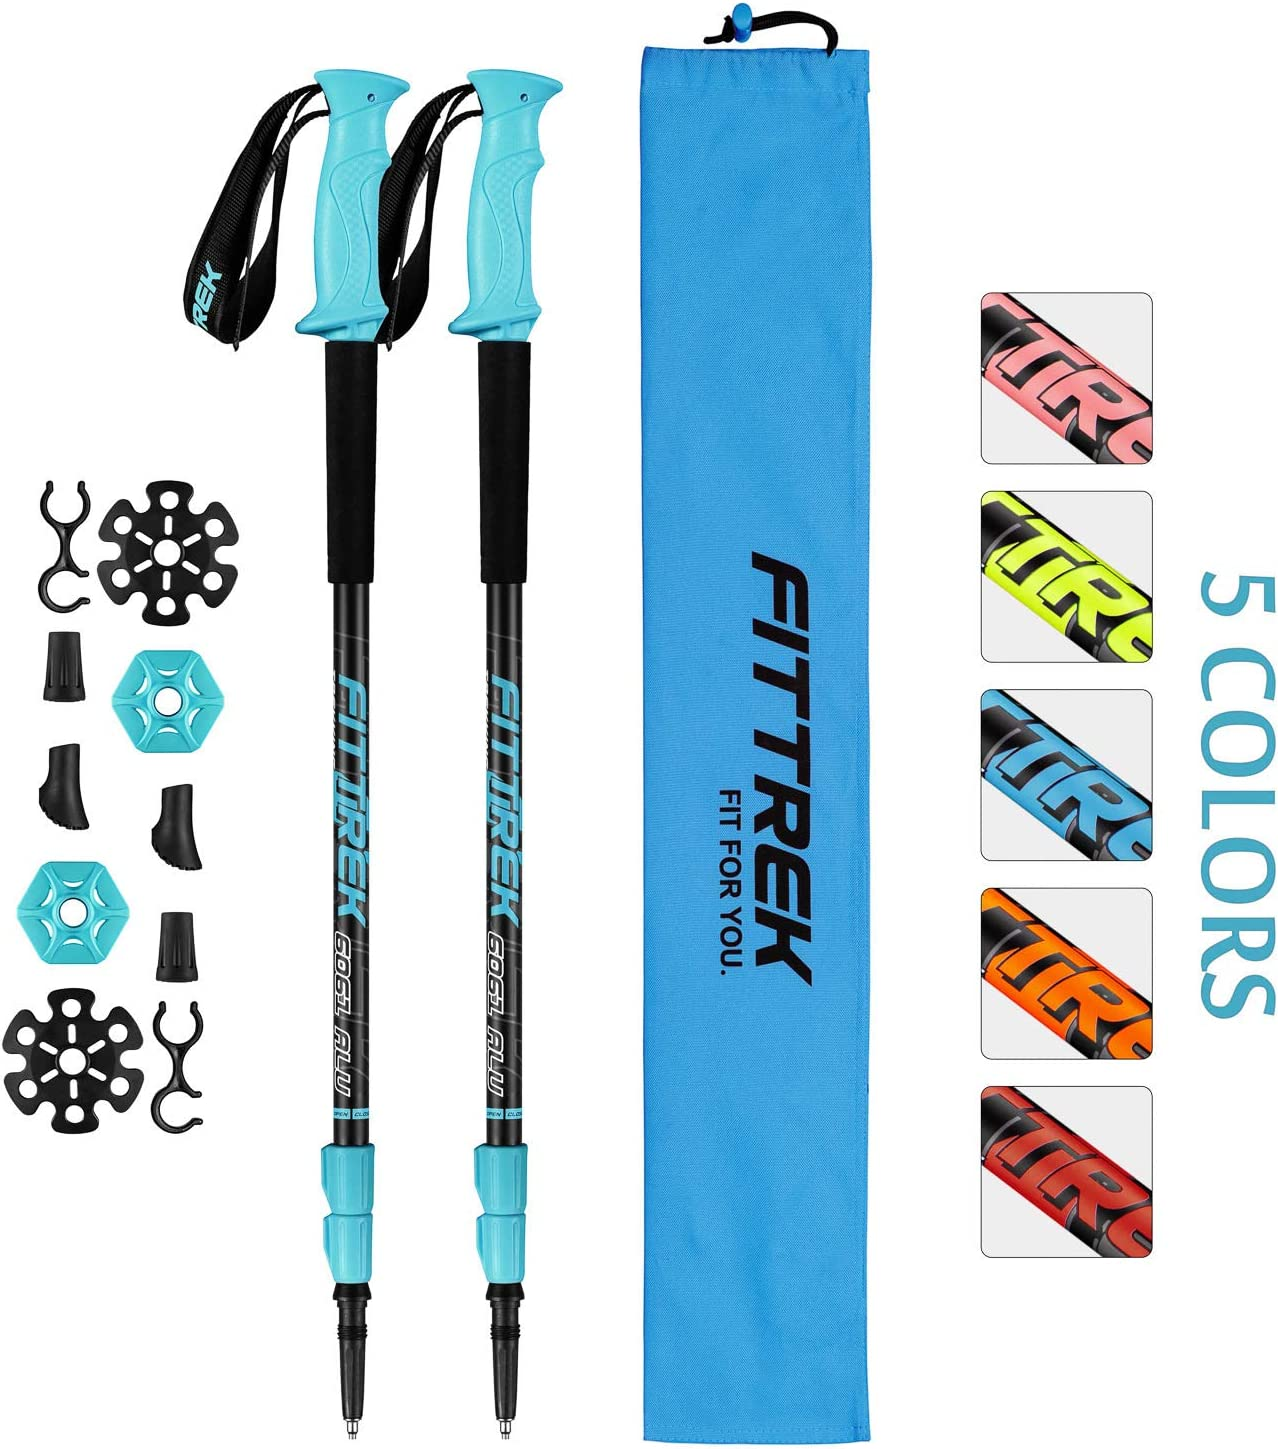 FitTrek Trekking Poles – Carbon Fibre Walking Poles – Hiking Poles Telescopic – Lightweight Nordic Walking Poles for Women, Men and Kids with Walking Poles Rubber Tips and Pole Bag, 1 Pair